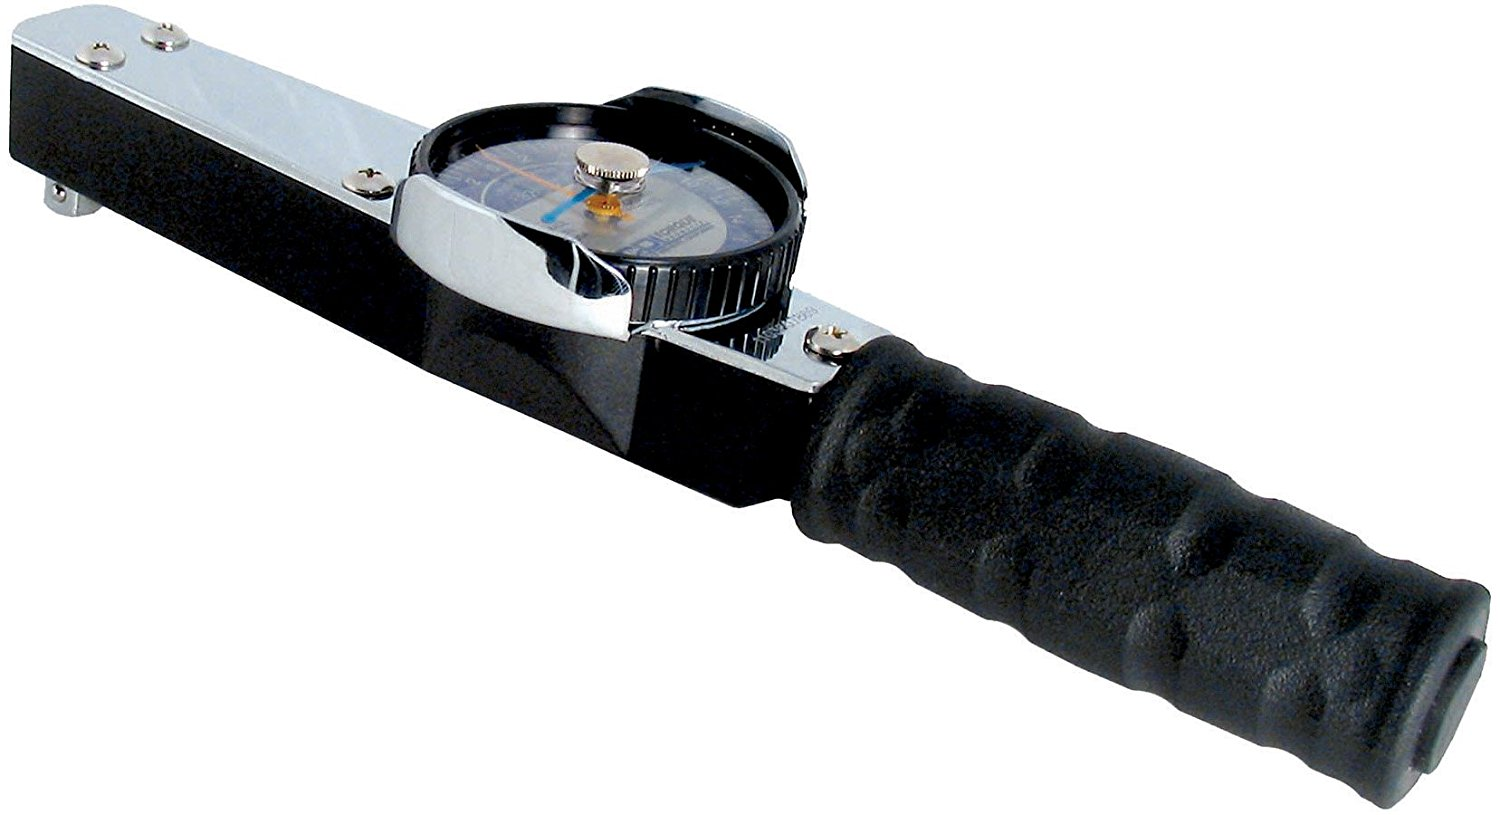 cdi 1502ldin ince torque wrench